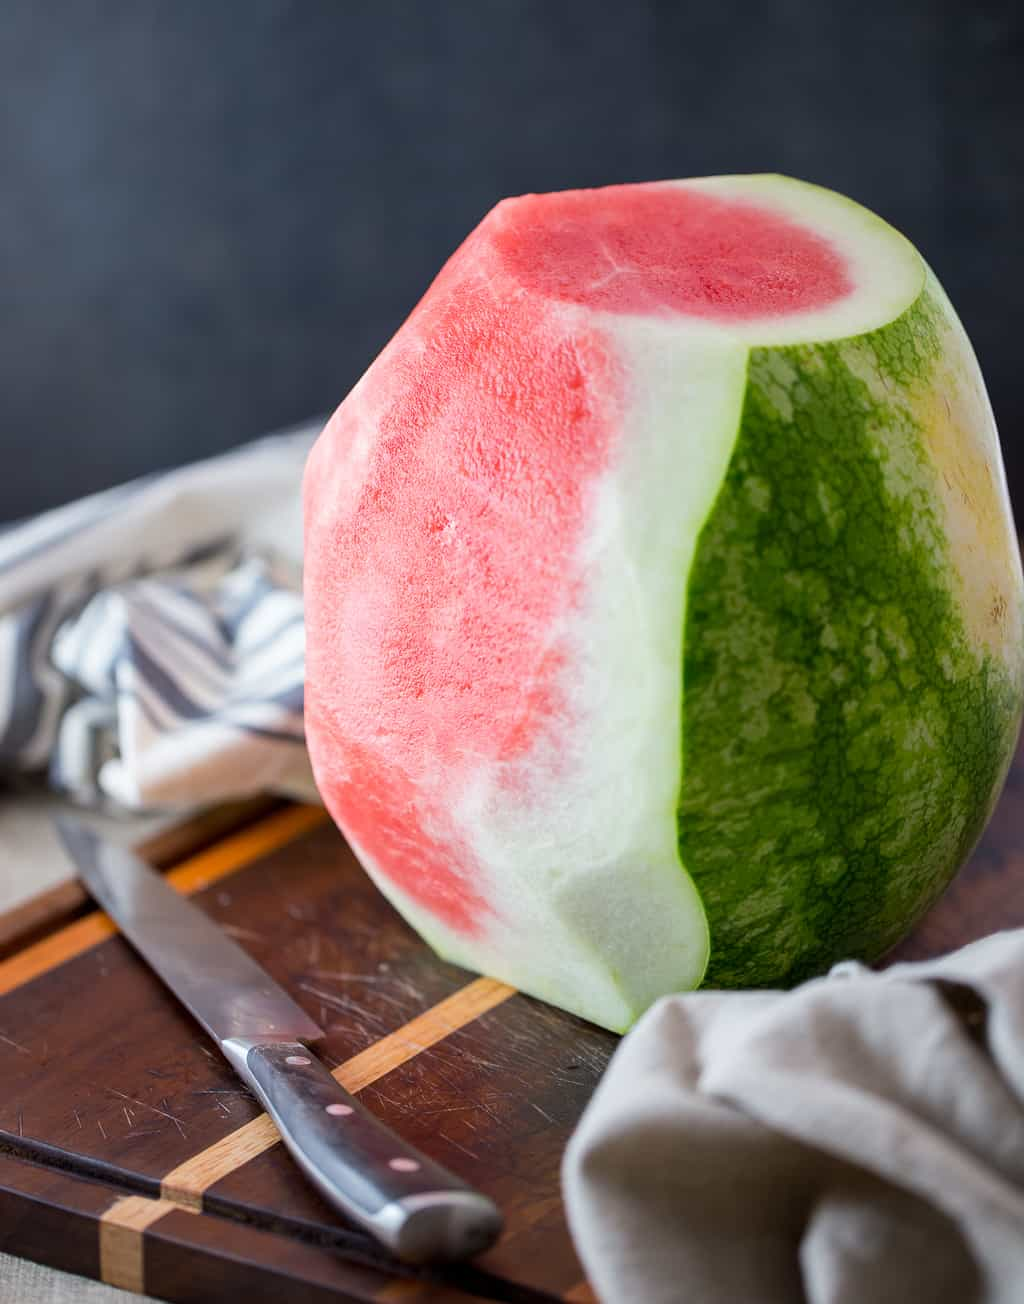 Watermelon Carved for Watermelon Cake